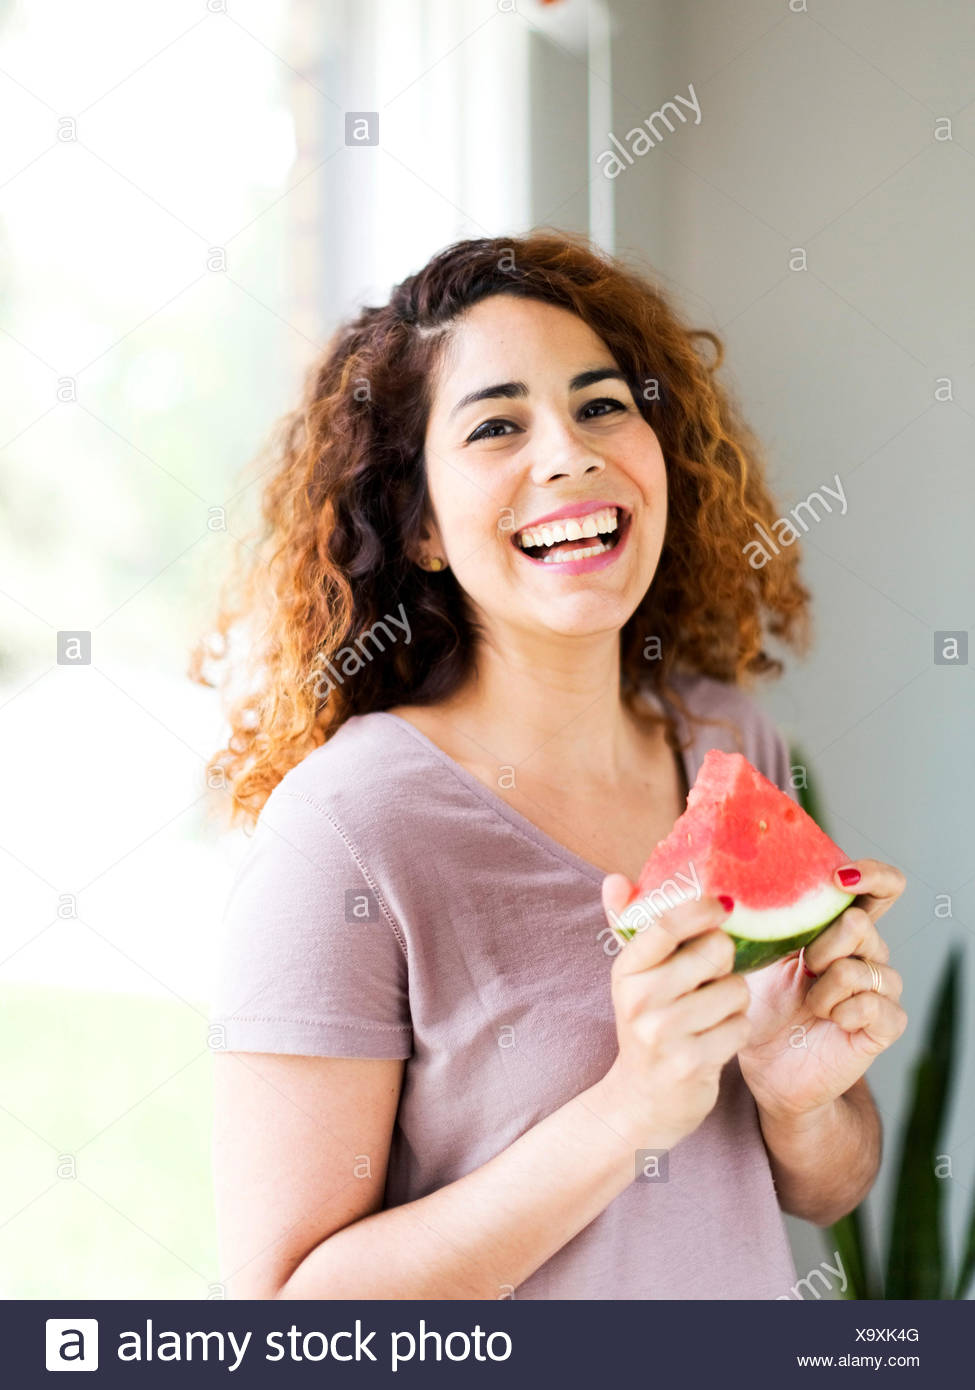 Woman holding water melon - Stock Image